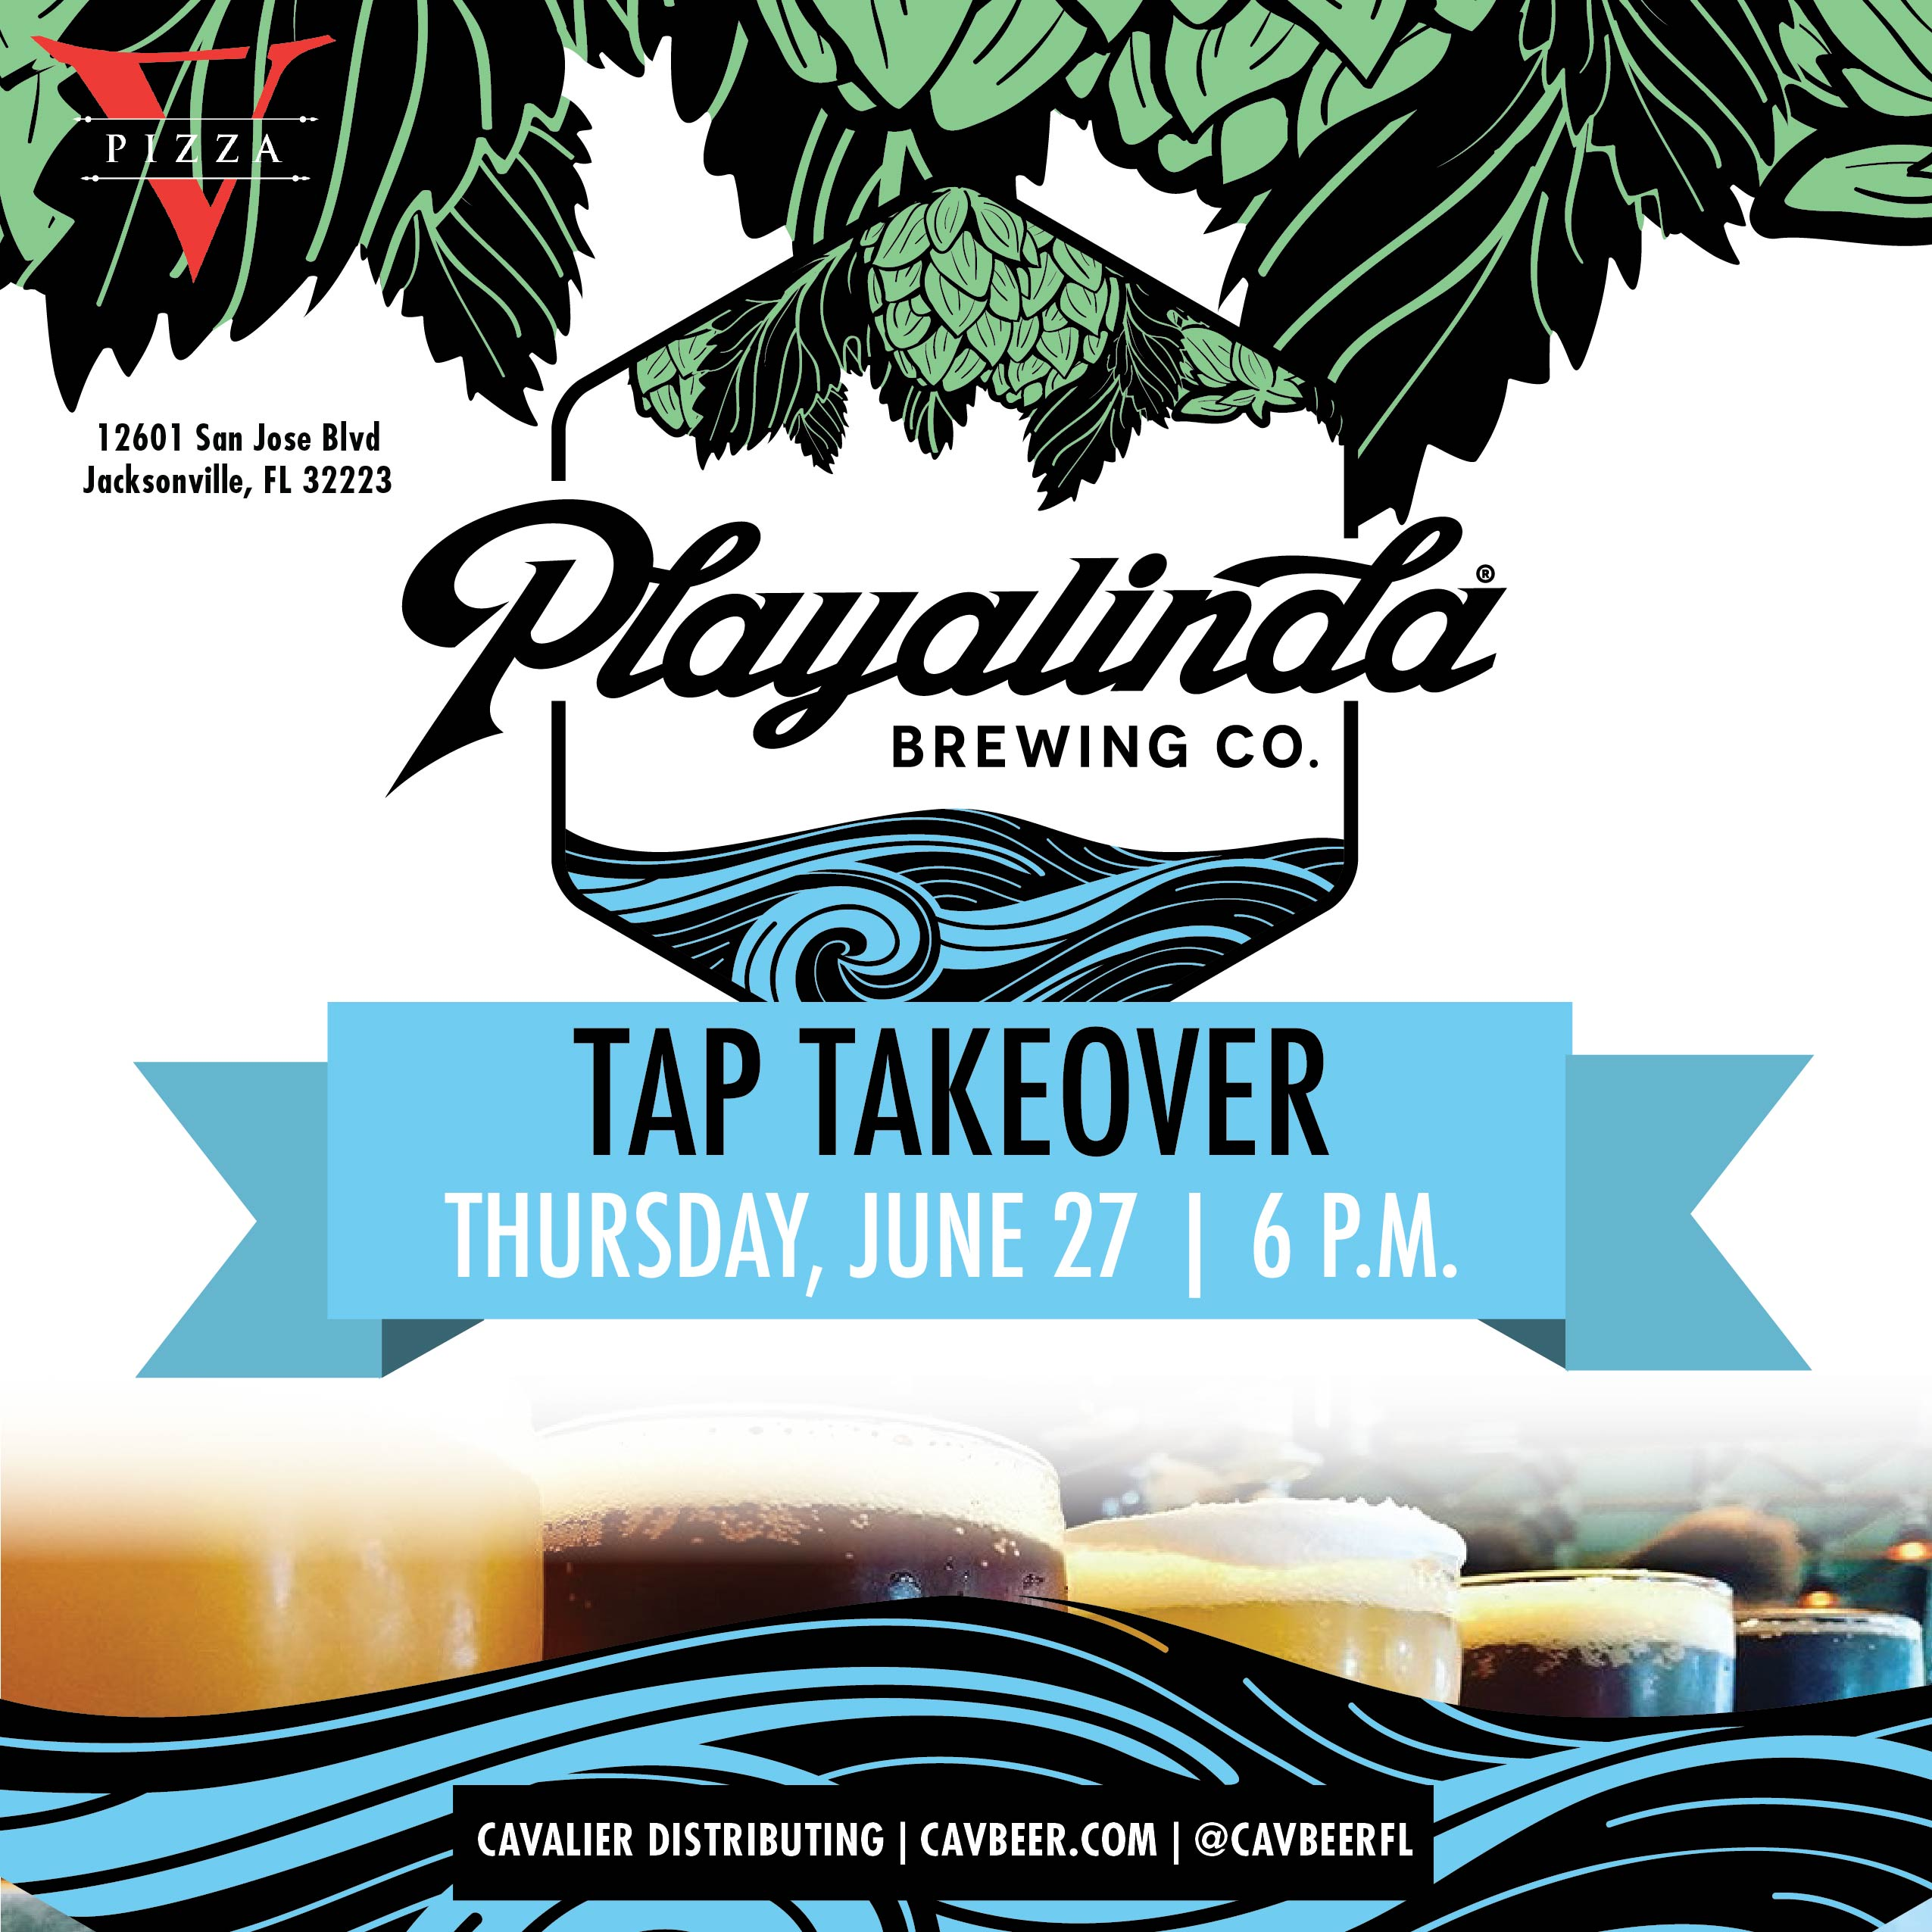 Playalinda Brewing Tap Takeover @ V Pizza